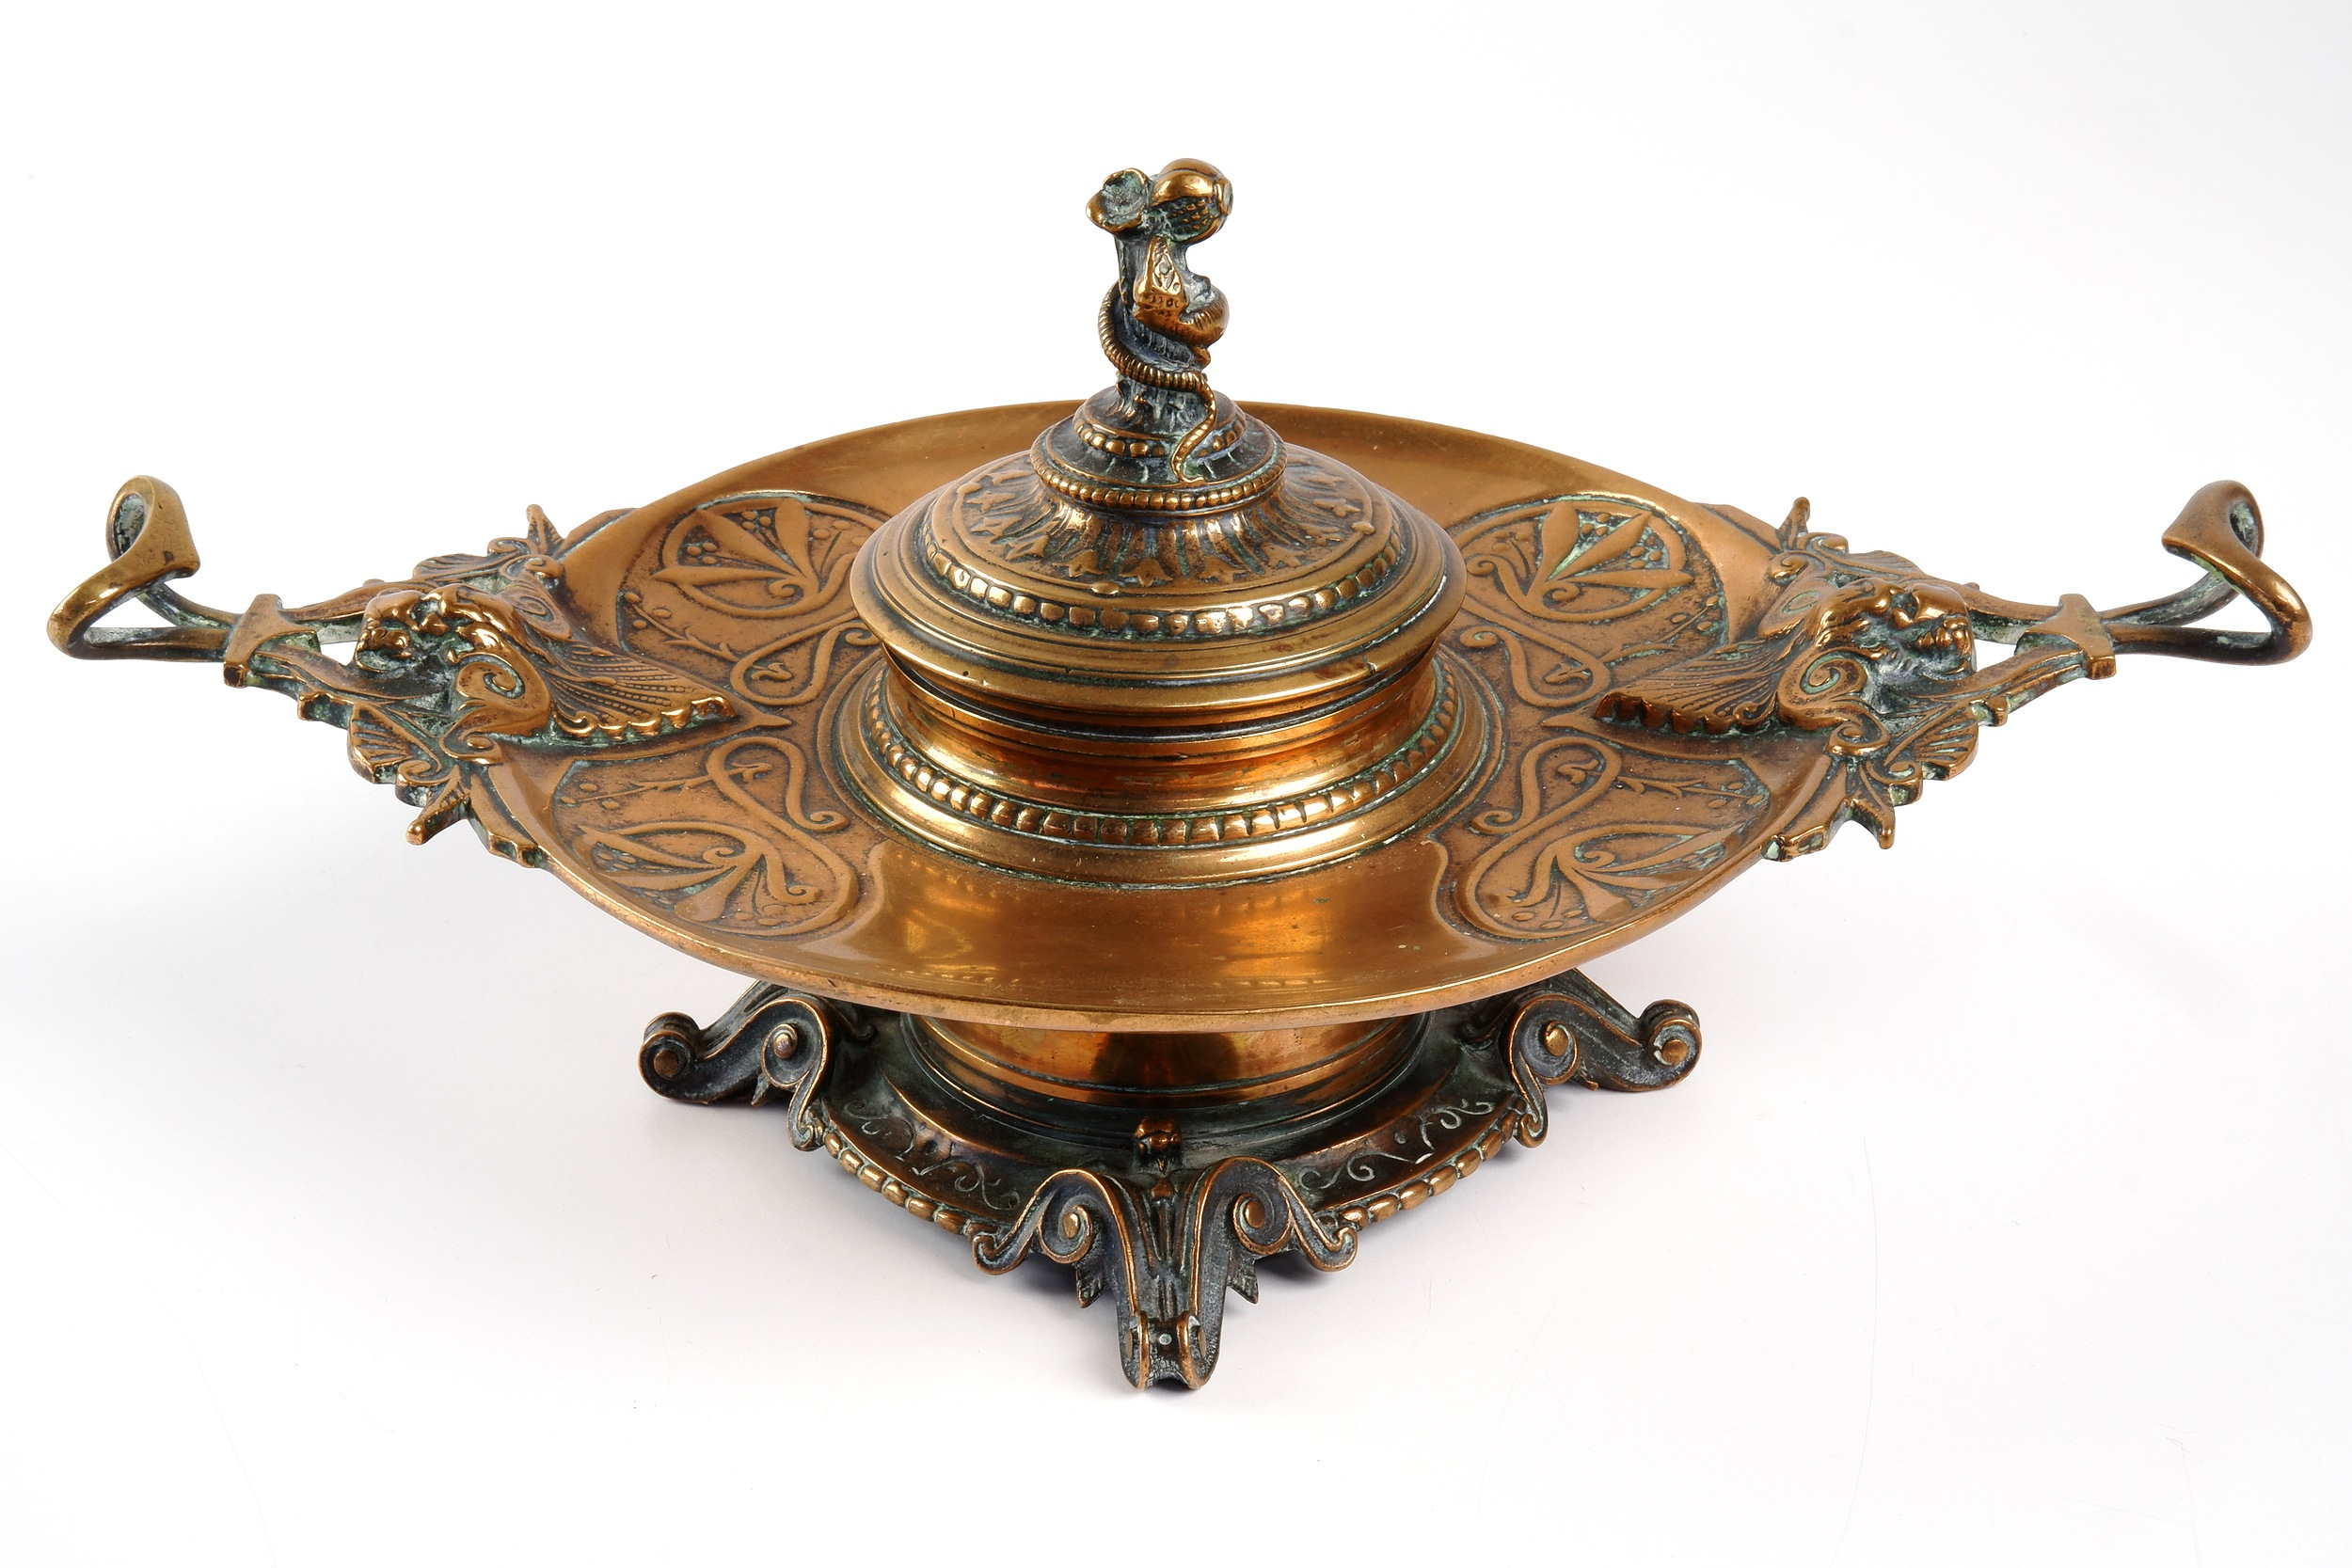 'Art Nouveau Cast Brass and Copper Inkwell with Coiled Serpent Finial, Early 20th Century'